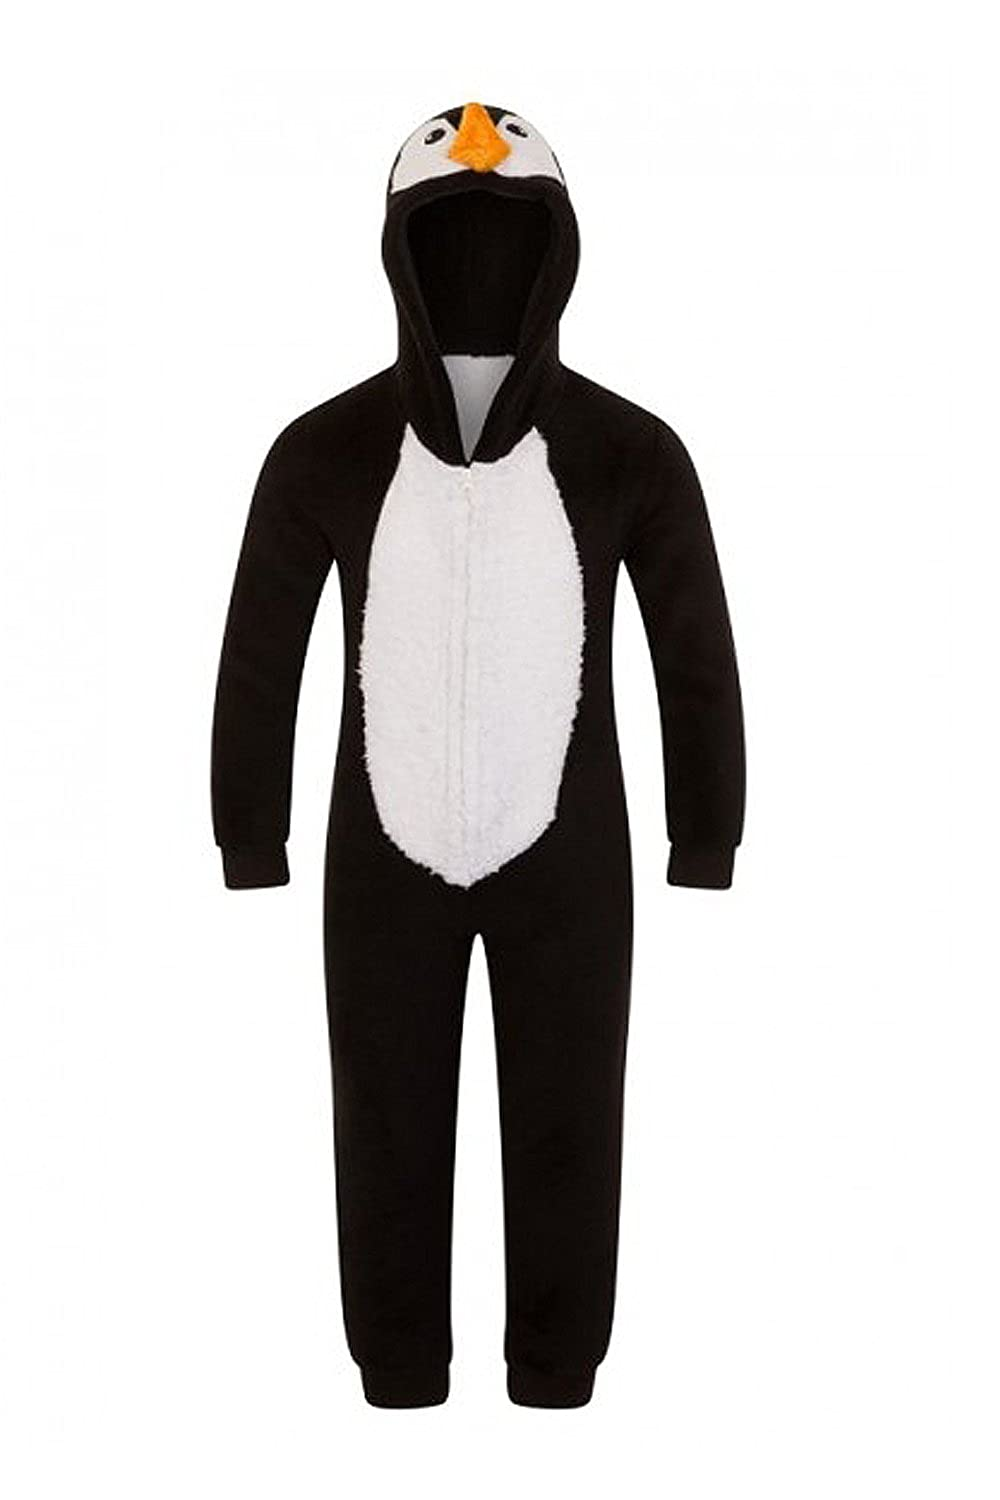 Nifty Kids Loungeable Boutique Novelty 3D Penguin Kids Luxury Soft Dressing Gown Robe Or All In One